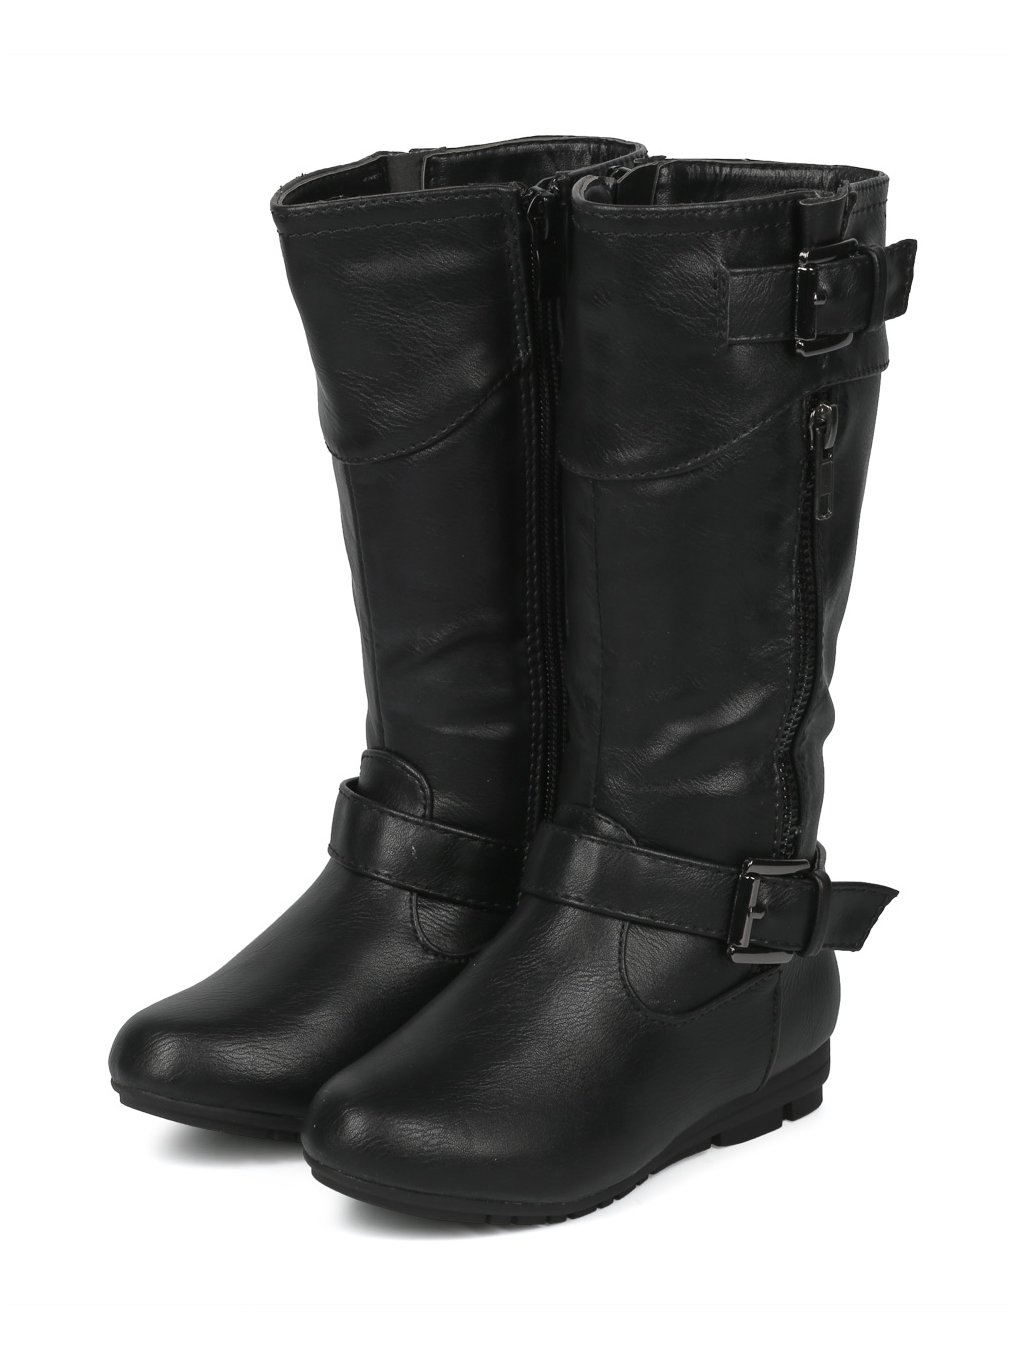 Alrisco Girls Leatherette Buckled Tall Riding Boot HF94 - Black Leatherette (Size: Little Kid 11) by Alrisco (Image #5)